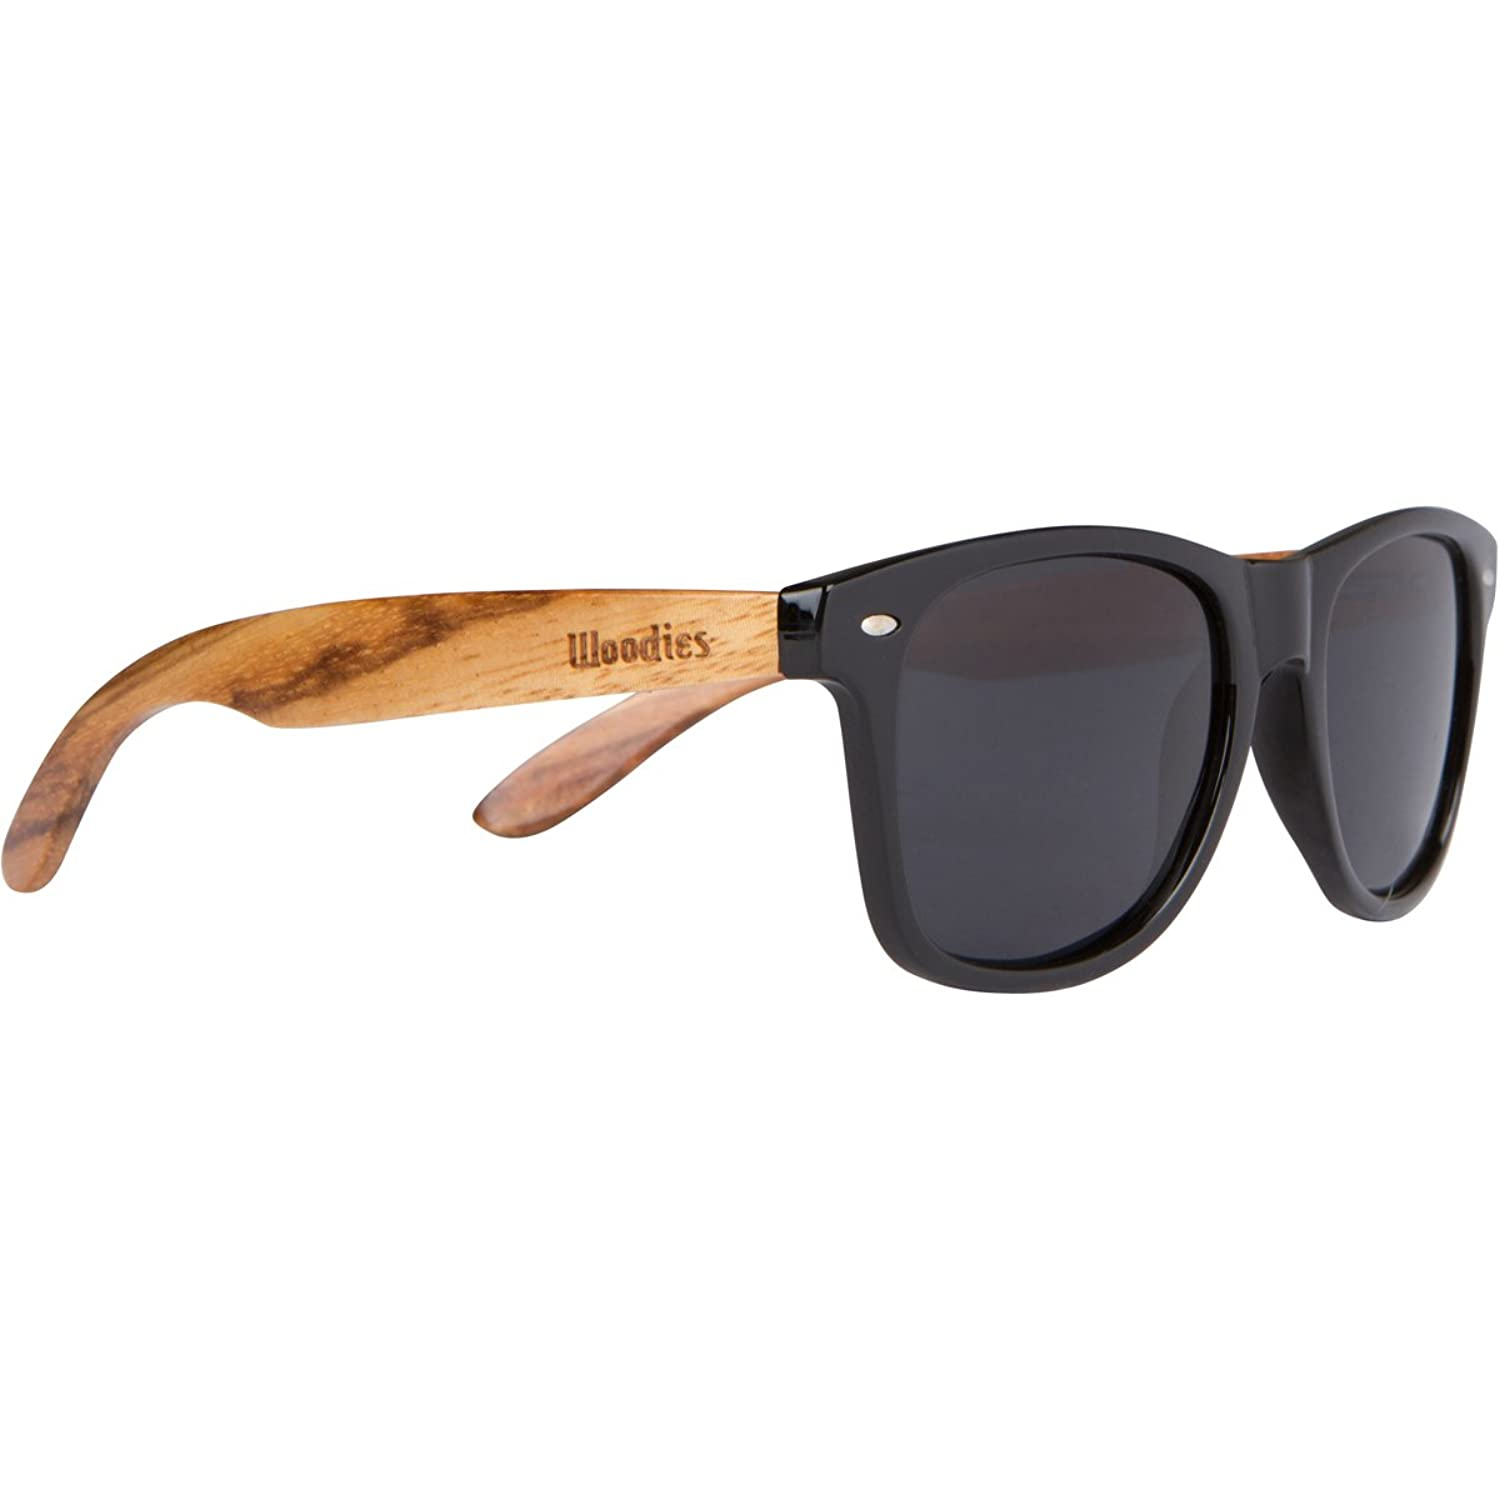 Woodies Zebra Wood Wayfarer Sunglasses With Black Polarized Lenses by Woodies